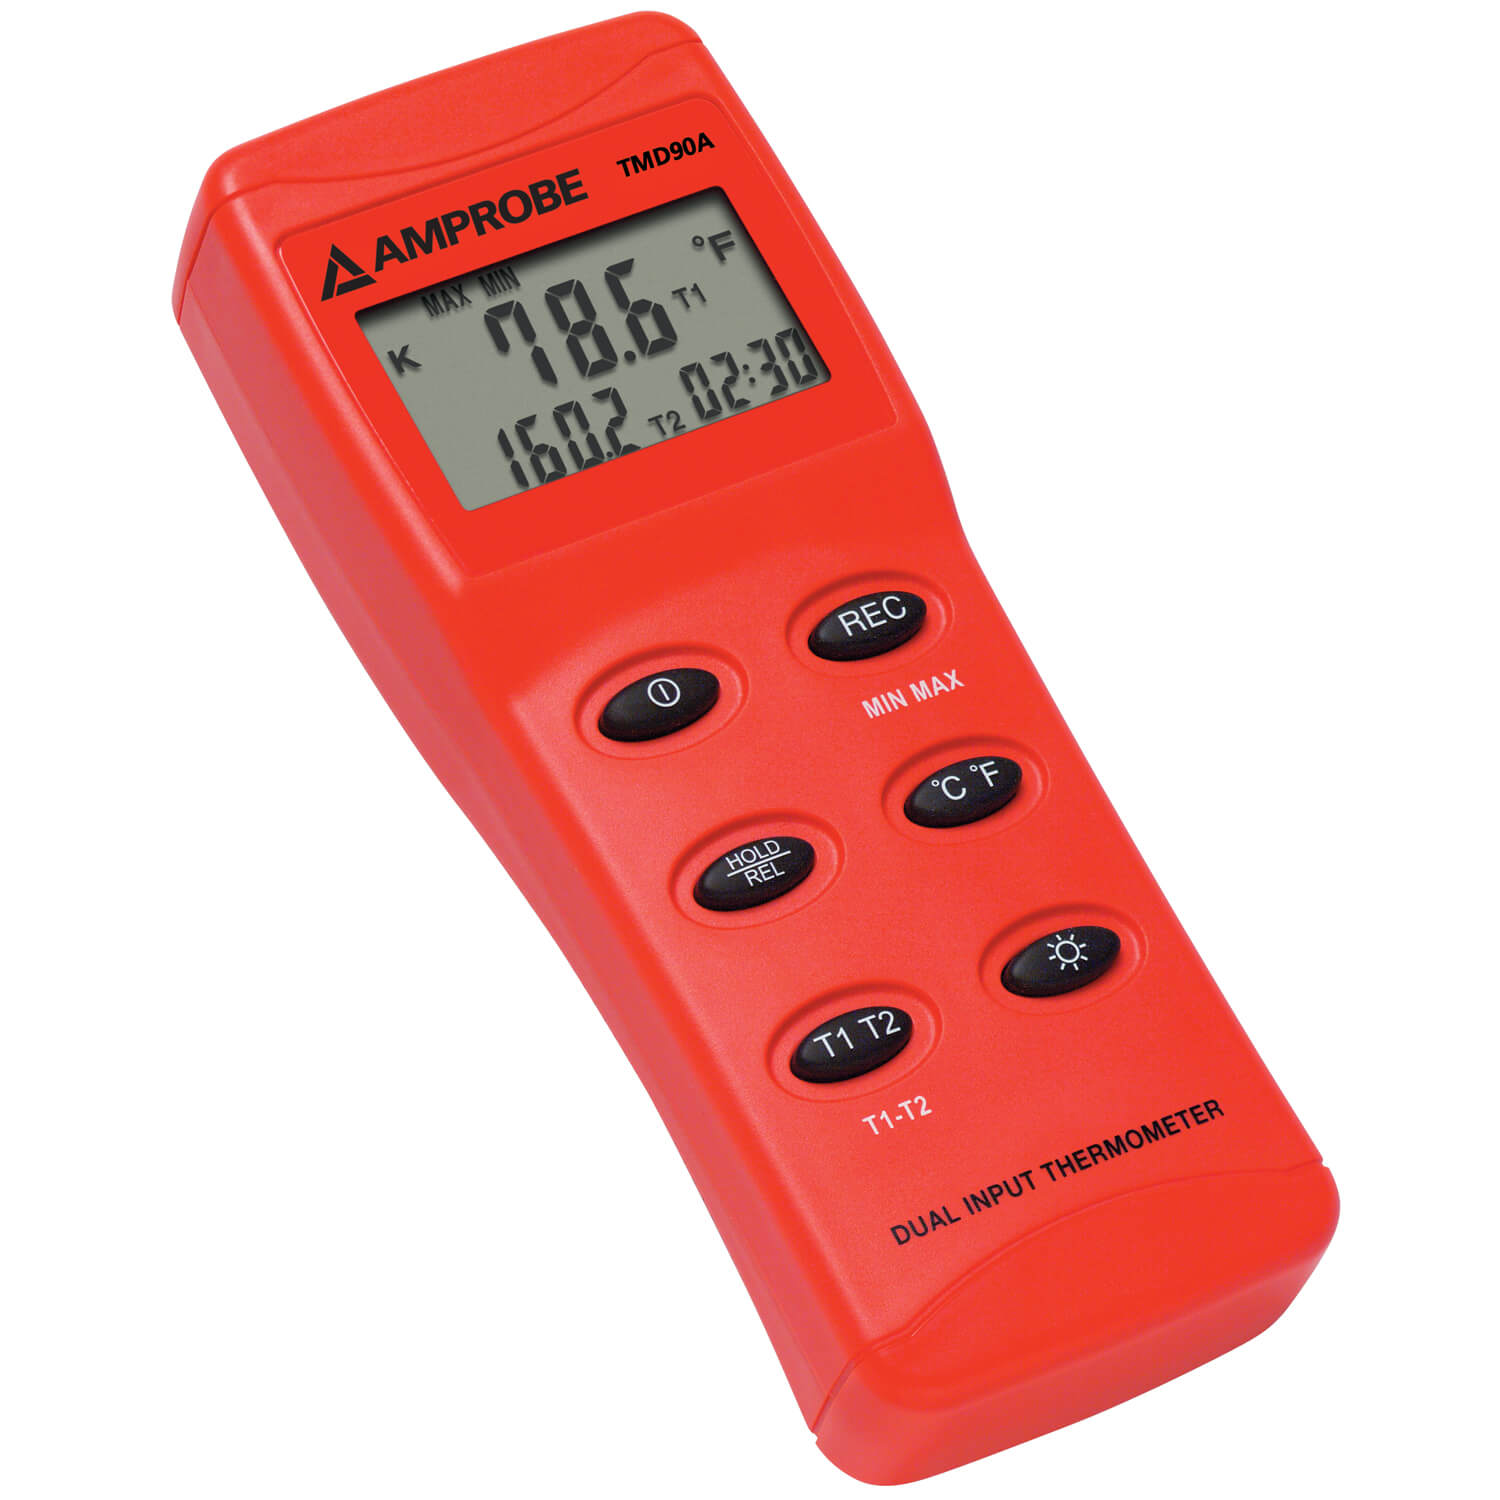 Amprobe TMD90A Thermocouple Probe Thermometer